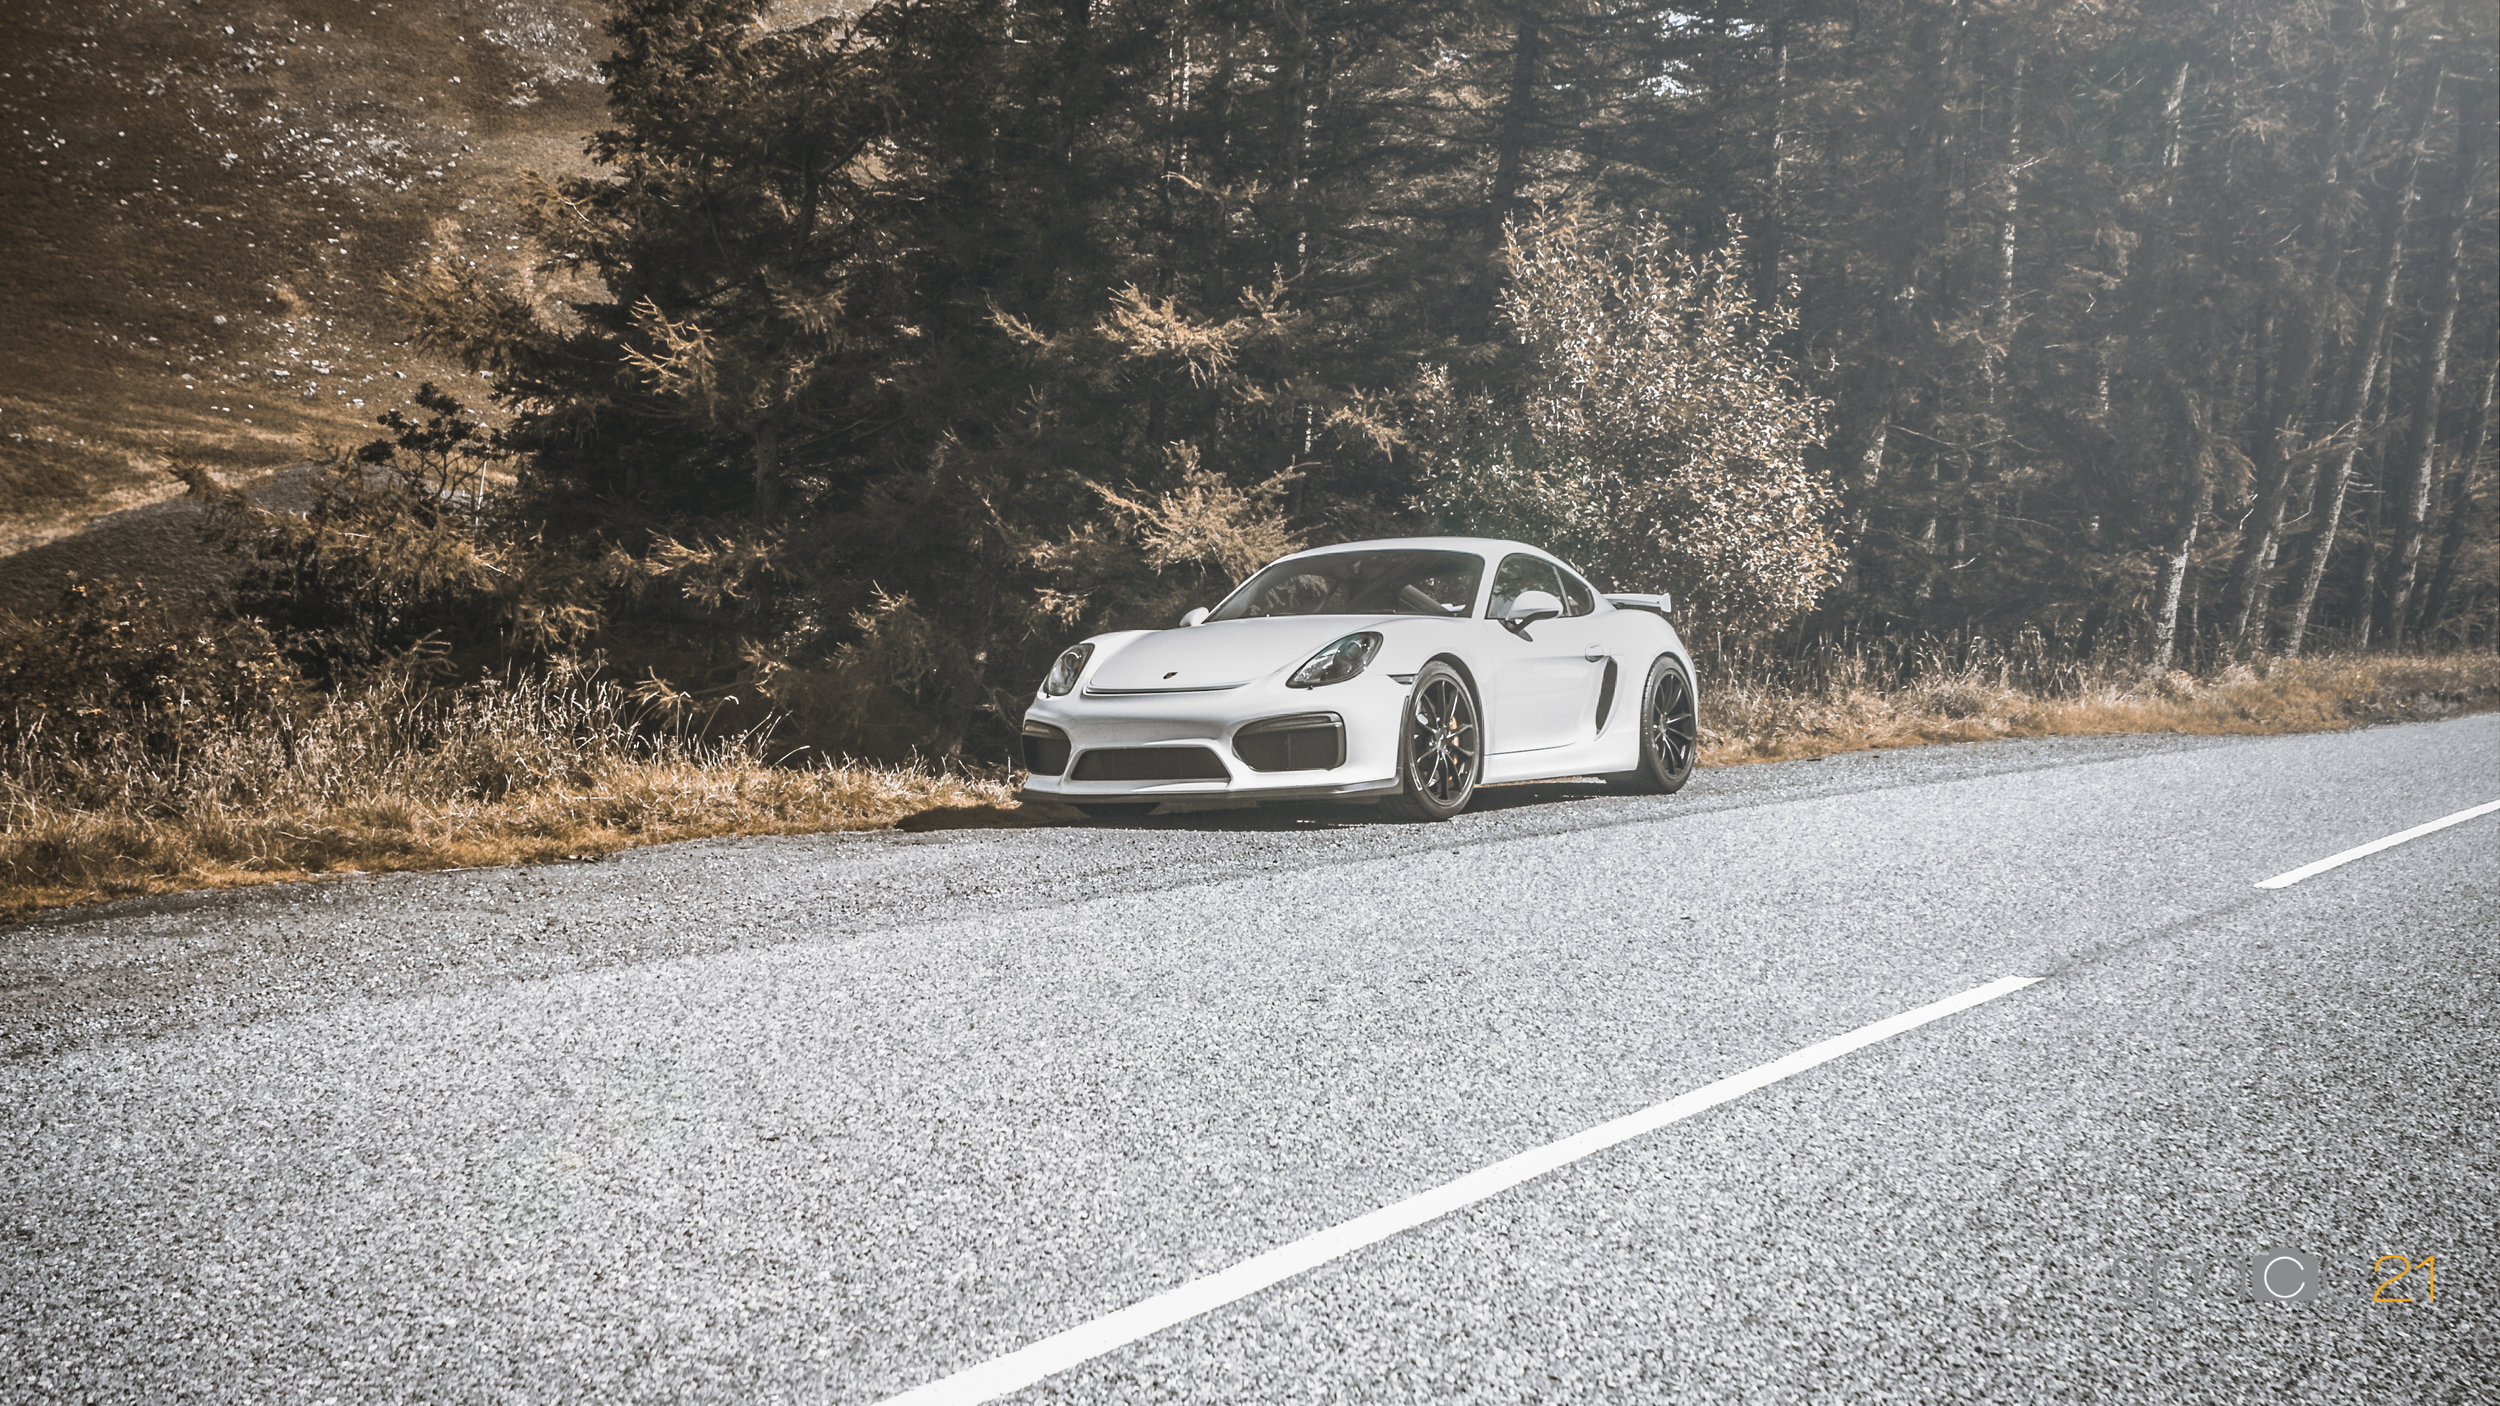 Porsche GT4 by Space21 Photography & Media